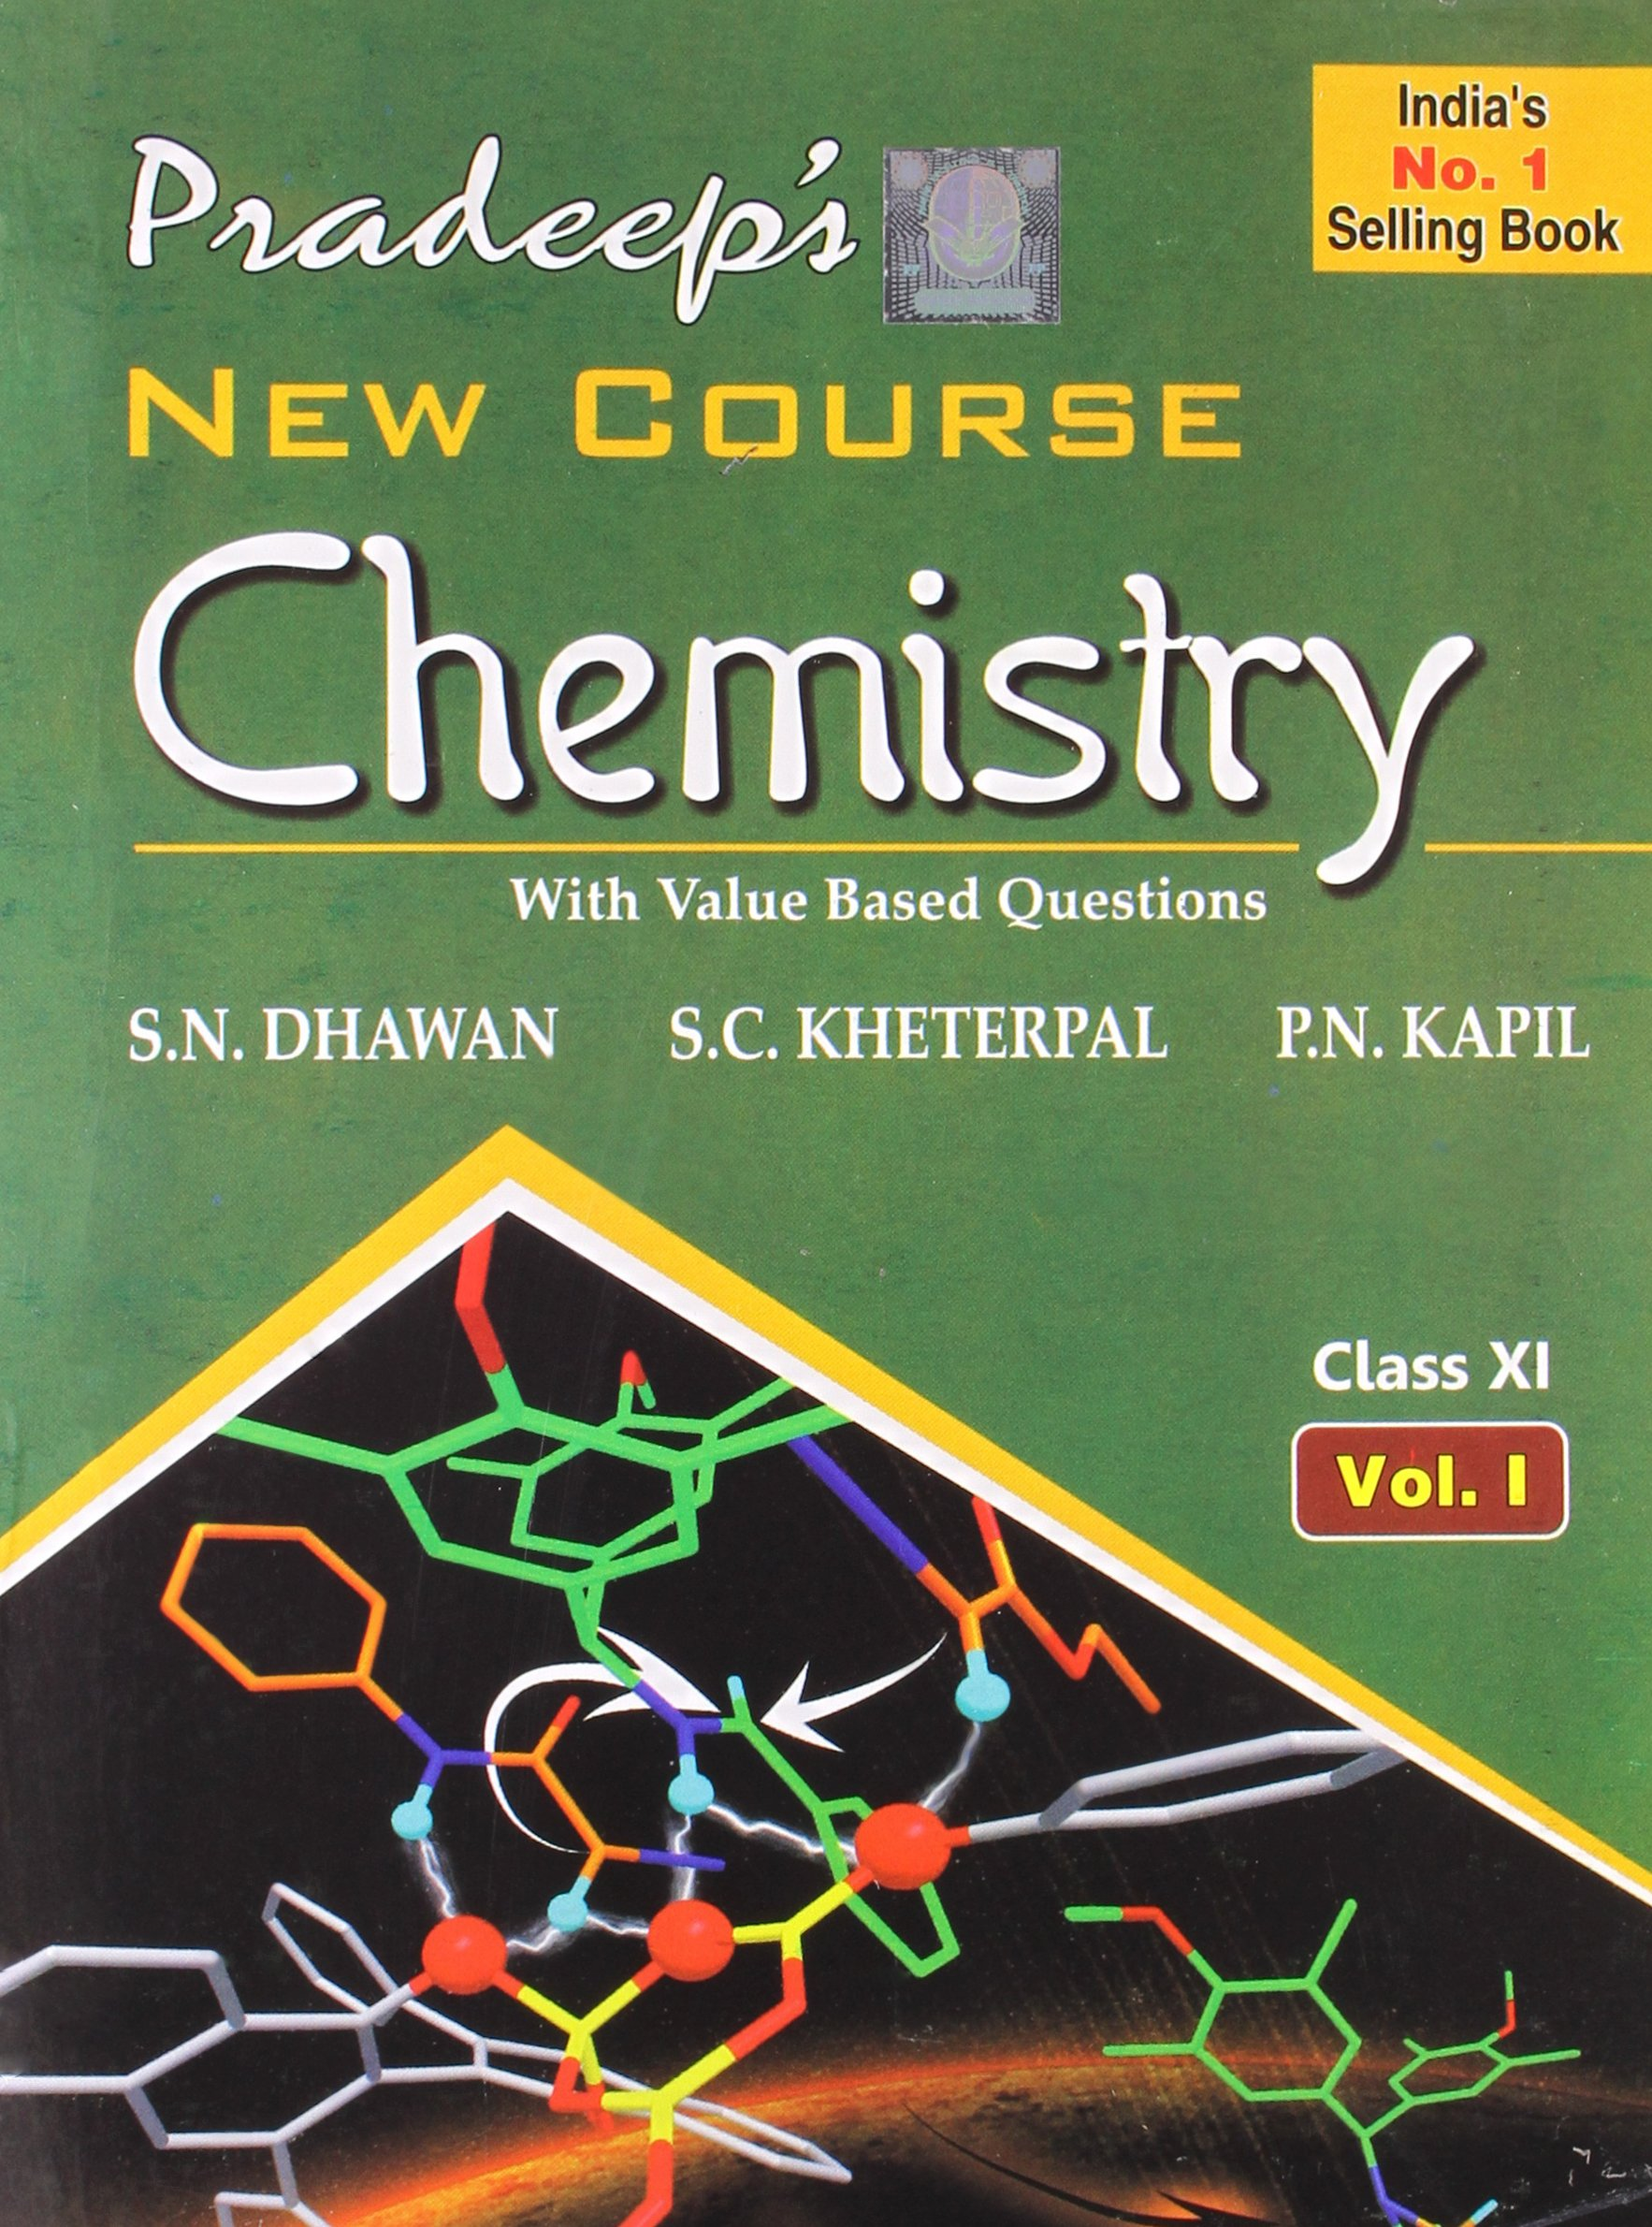 Buy pradeep s a text book of chemistry with value based questions class xi set of 2 volumes book online at low prices in india pradeep s a text book